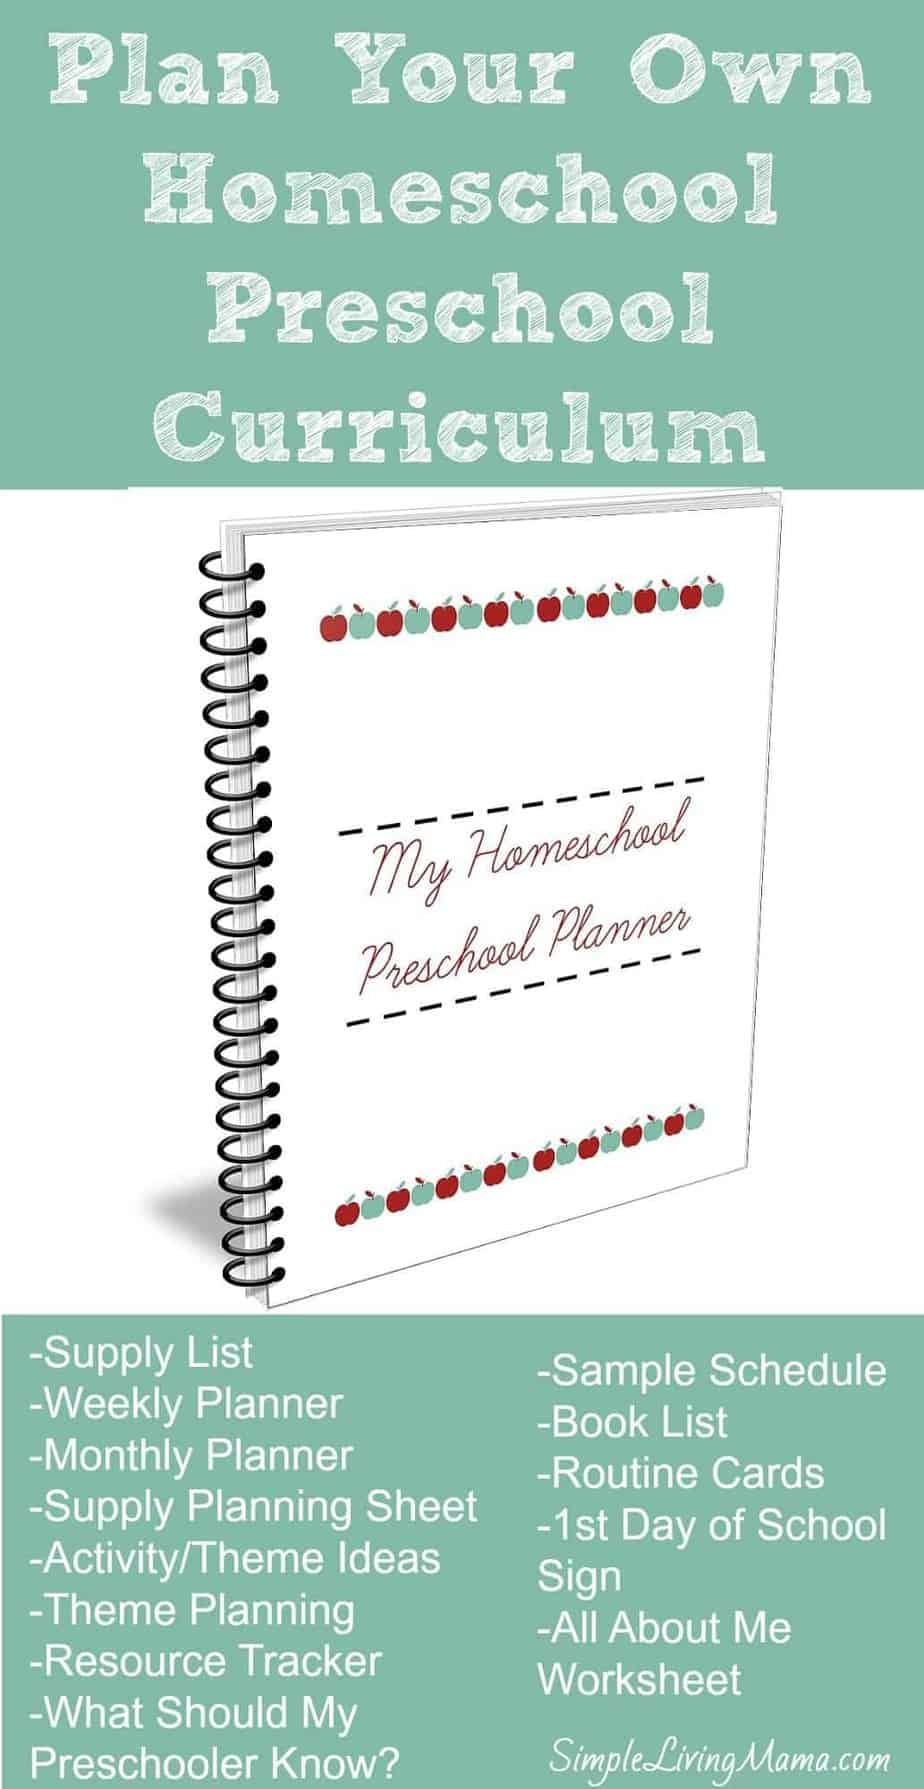 Plan Your Own Homeschool Preschool Curriculum with My Homeschool Preschool Planner!